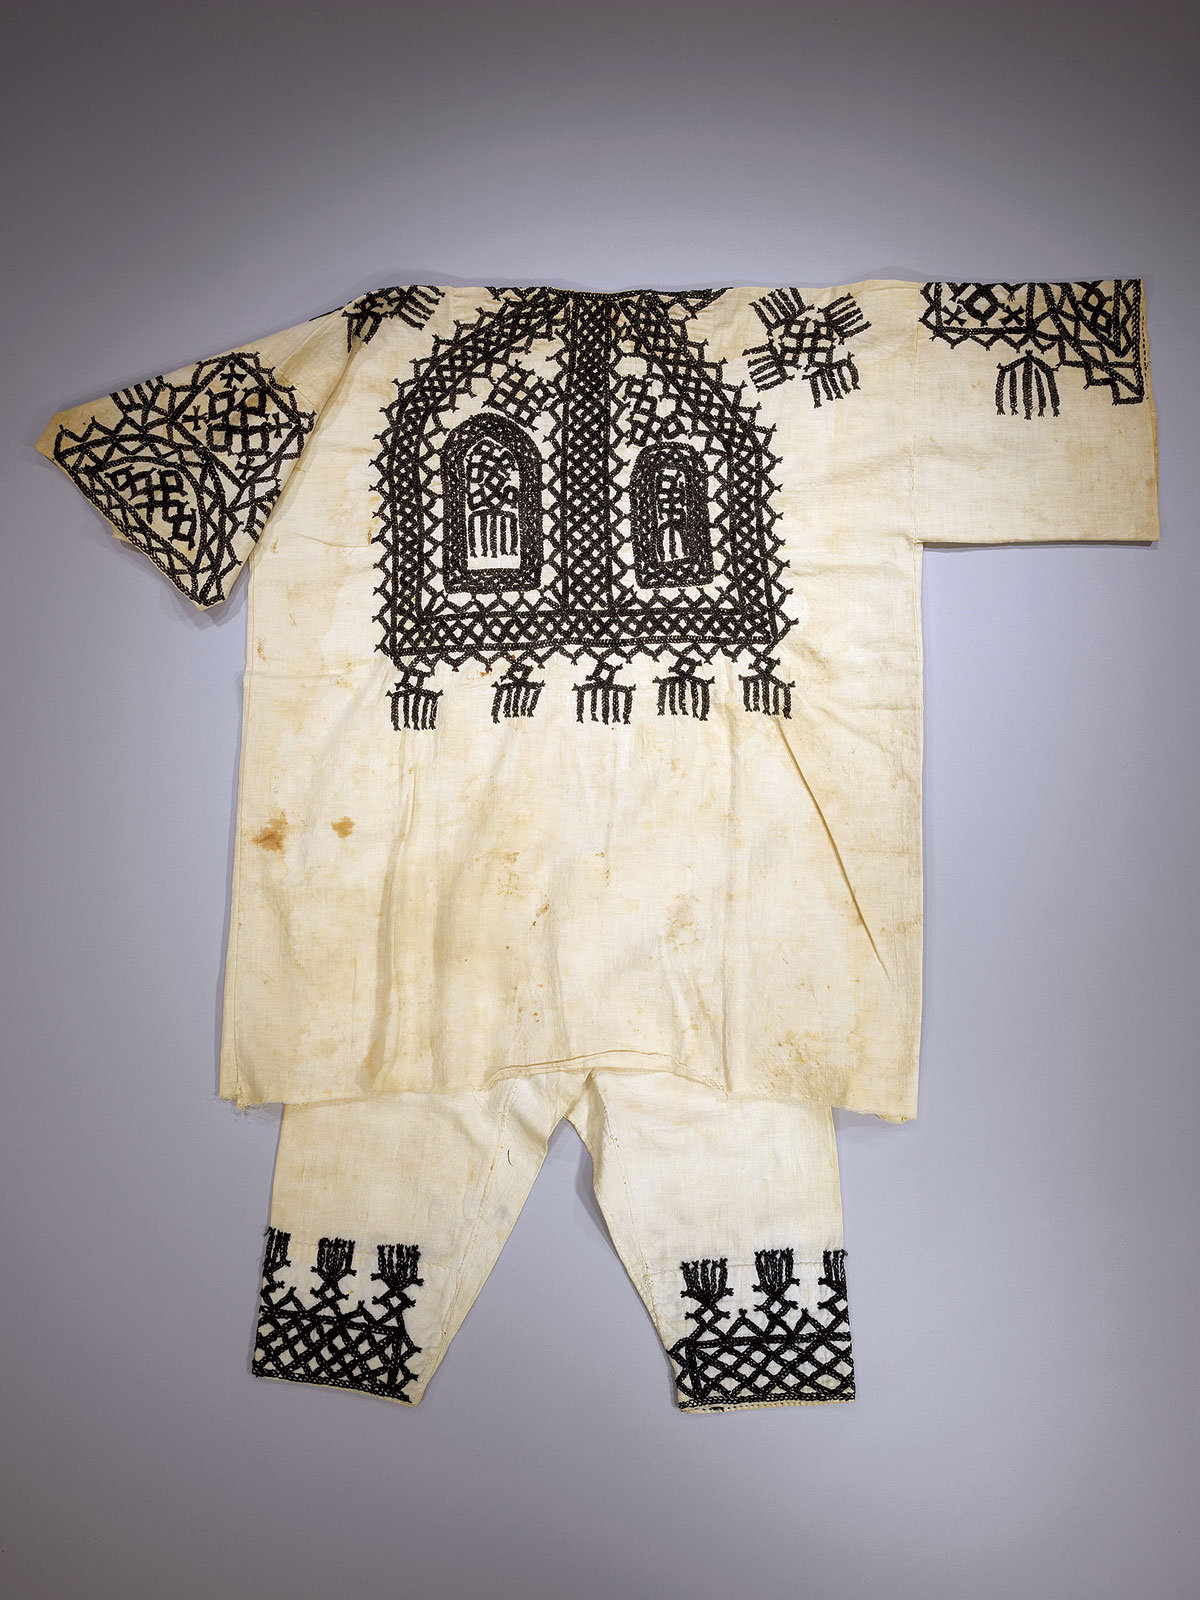 BOY'S SUIT FOR A SYMBOLIC CHILDREN'S WEDDING of cotton and cotton-thread embroidery, Tafilalt, Morocco, mid-twentieth century.  Photograph by Mauro Magliani, courtesy of The Israel Museum, Jerusalem.